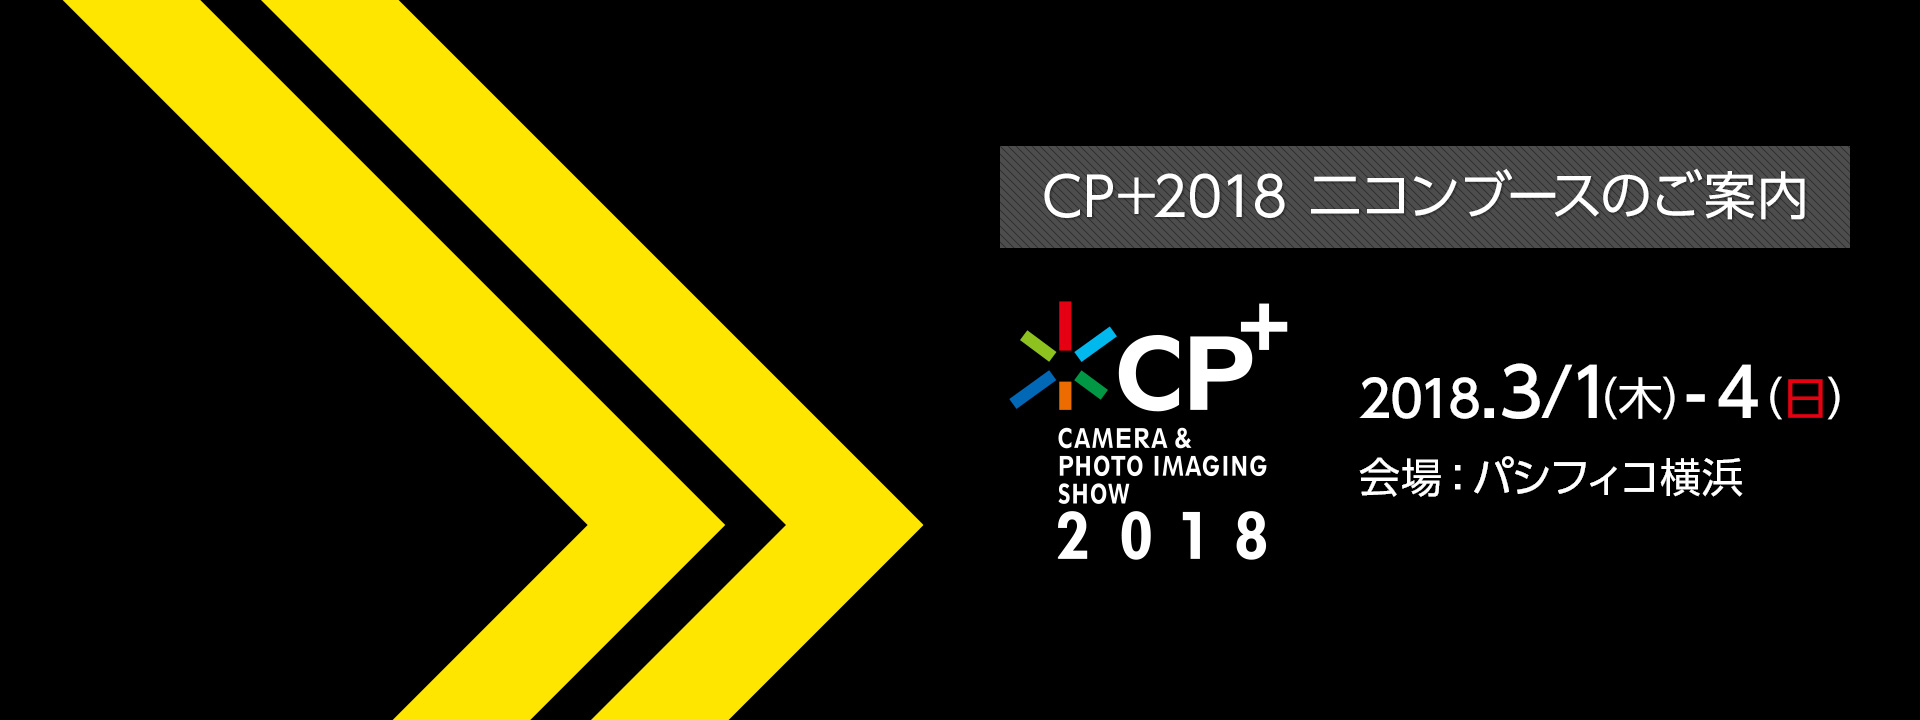 CP+2018 ニコンブースのご案内